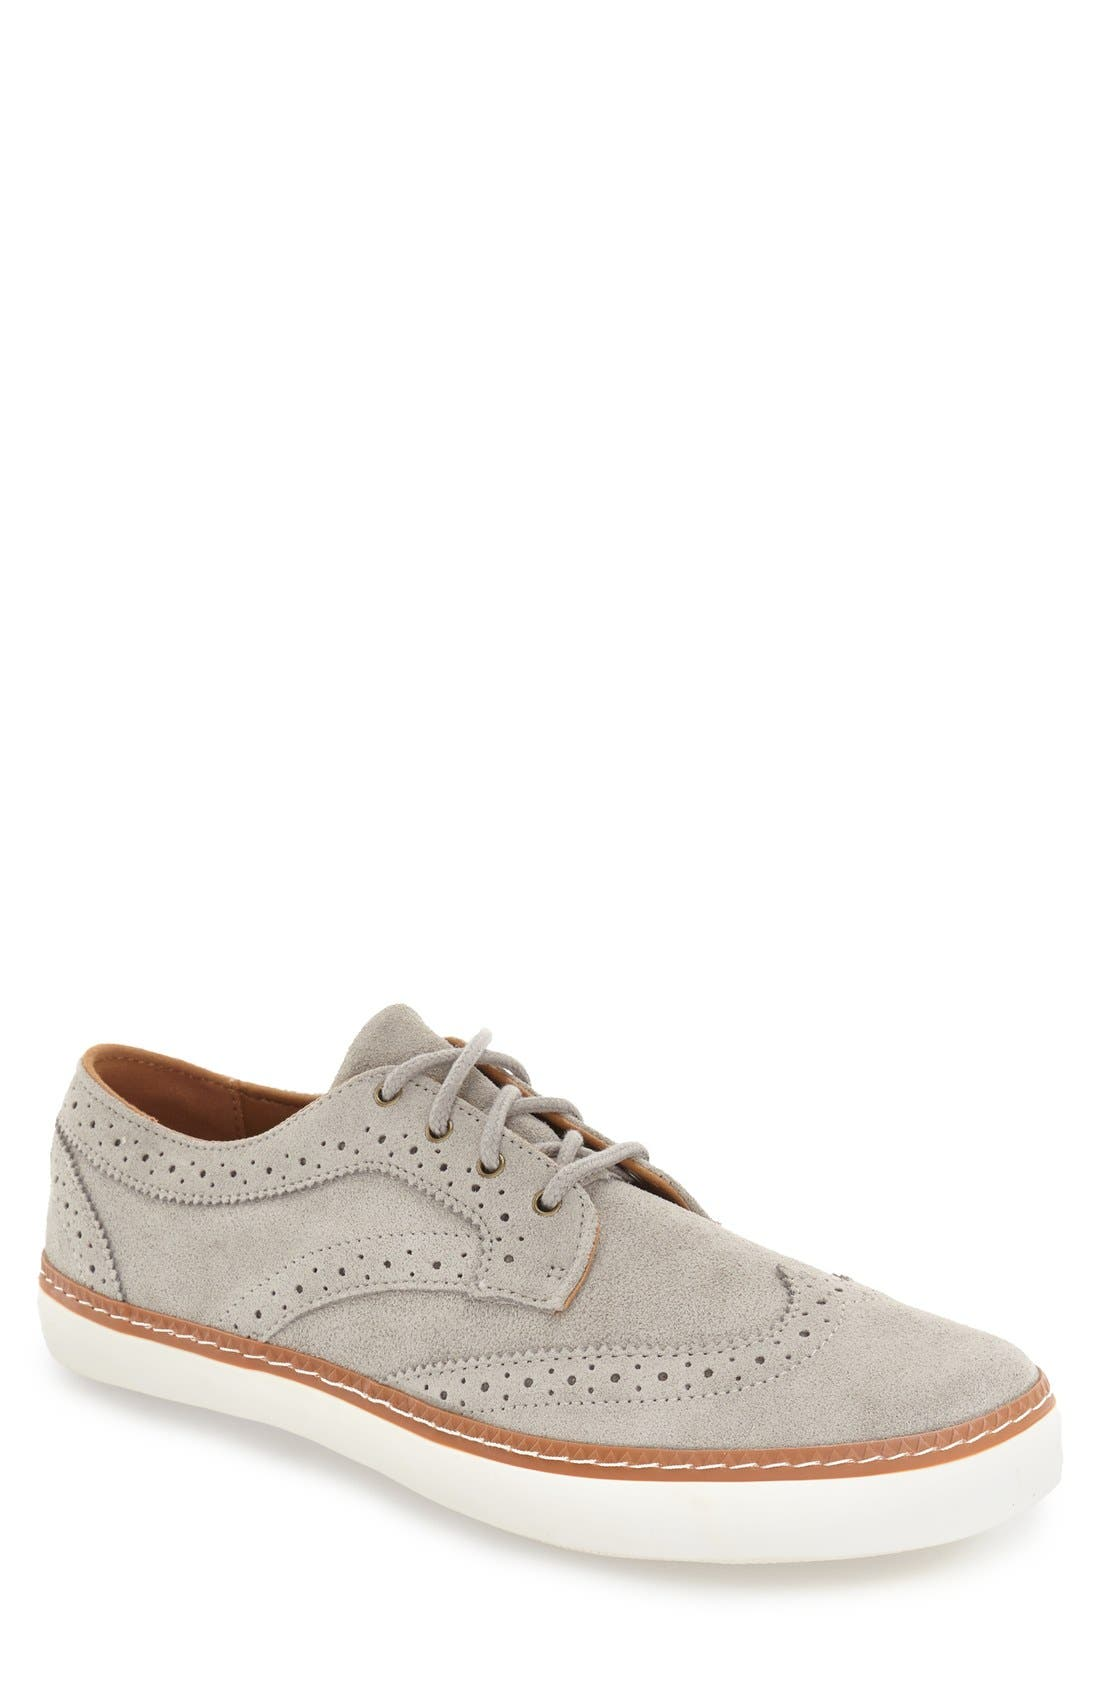 'Novello' Wingtip Sneaker,                         Main,                         color, 020